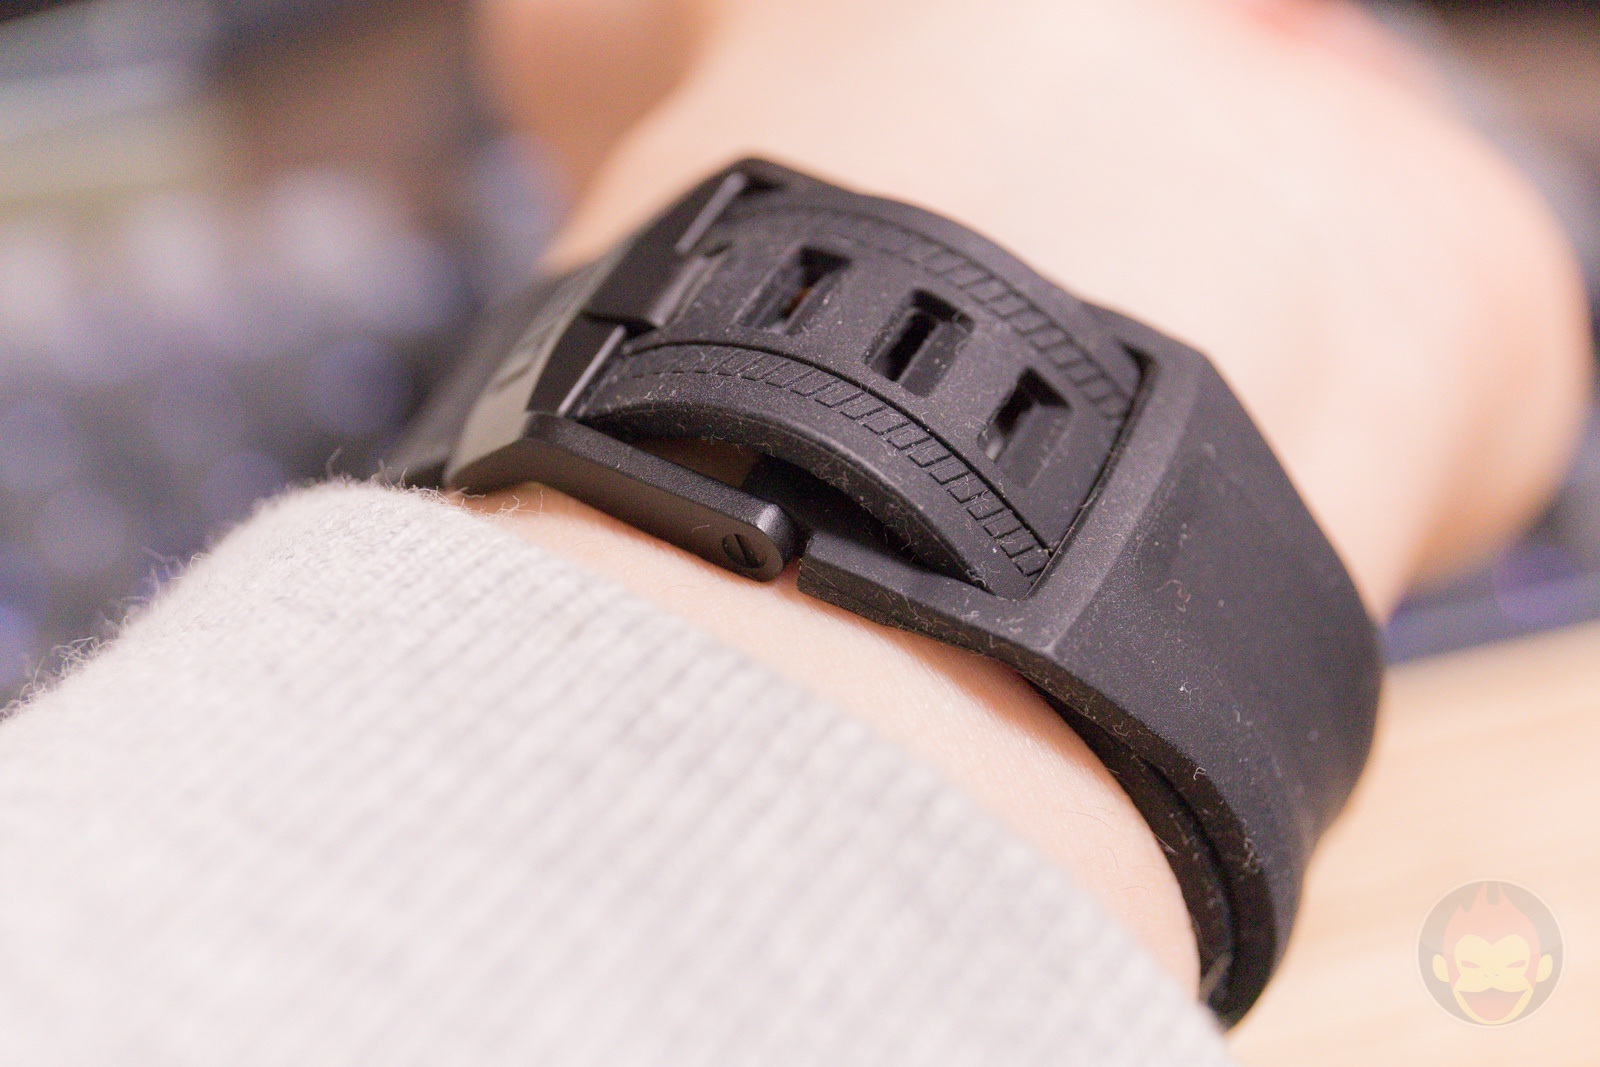 Apple Watch G SHOCK Elecom Case and UAG Band Review 10